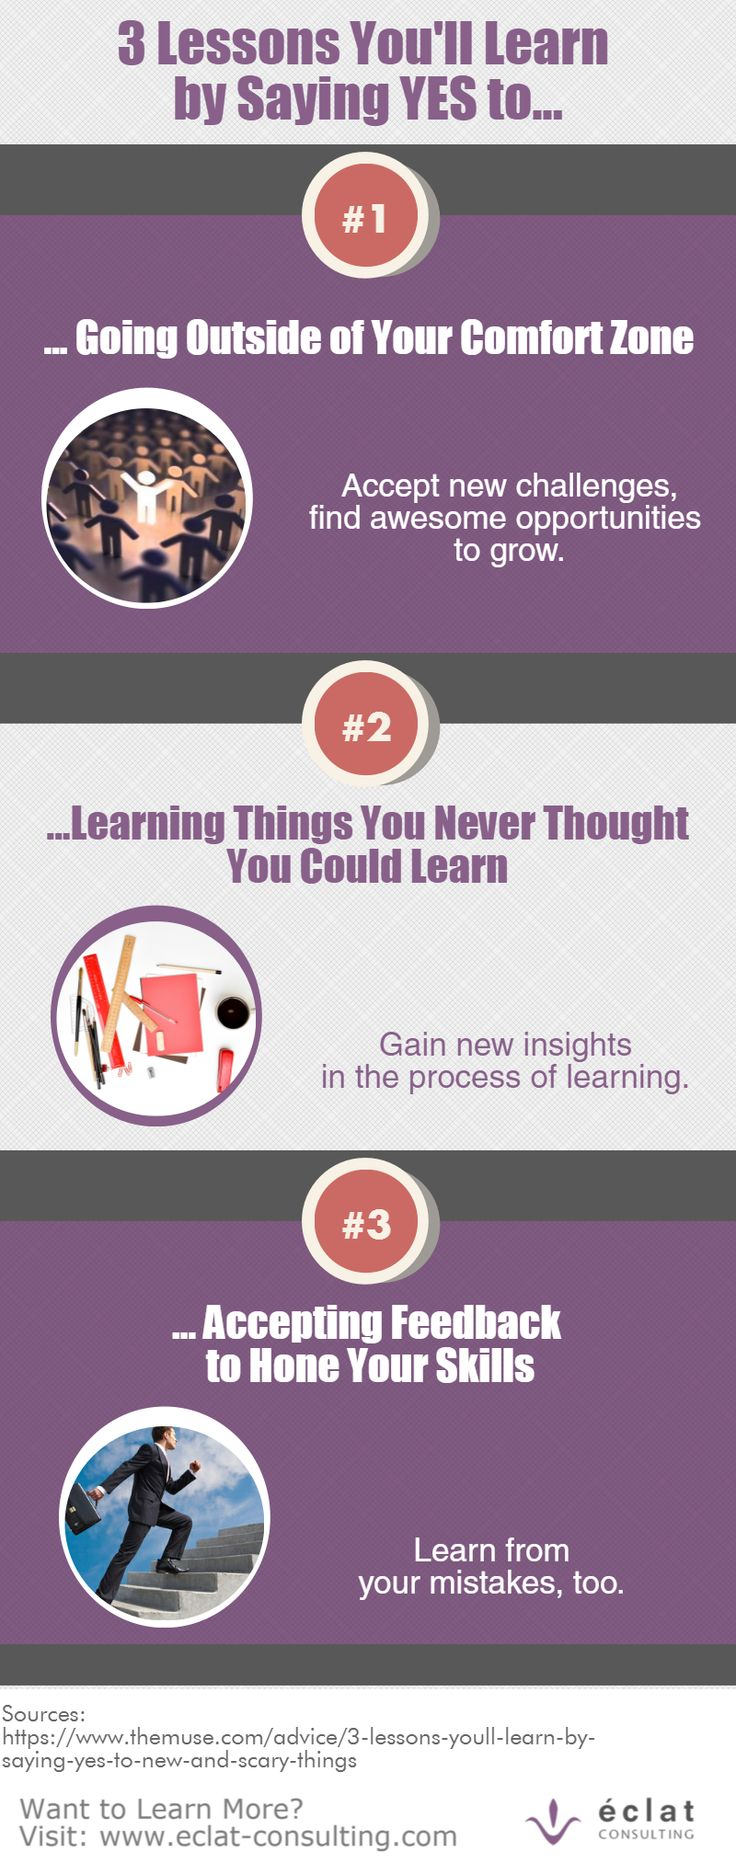 Say YES to these learning opportunities.